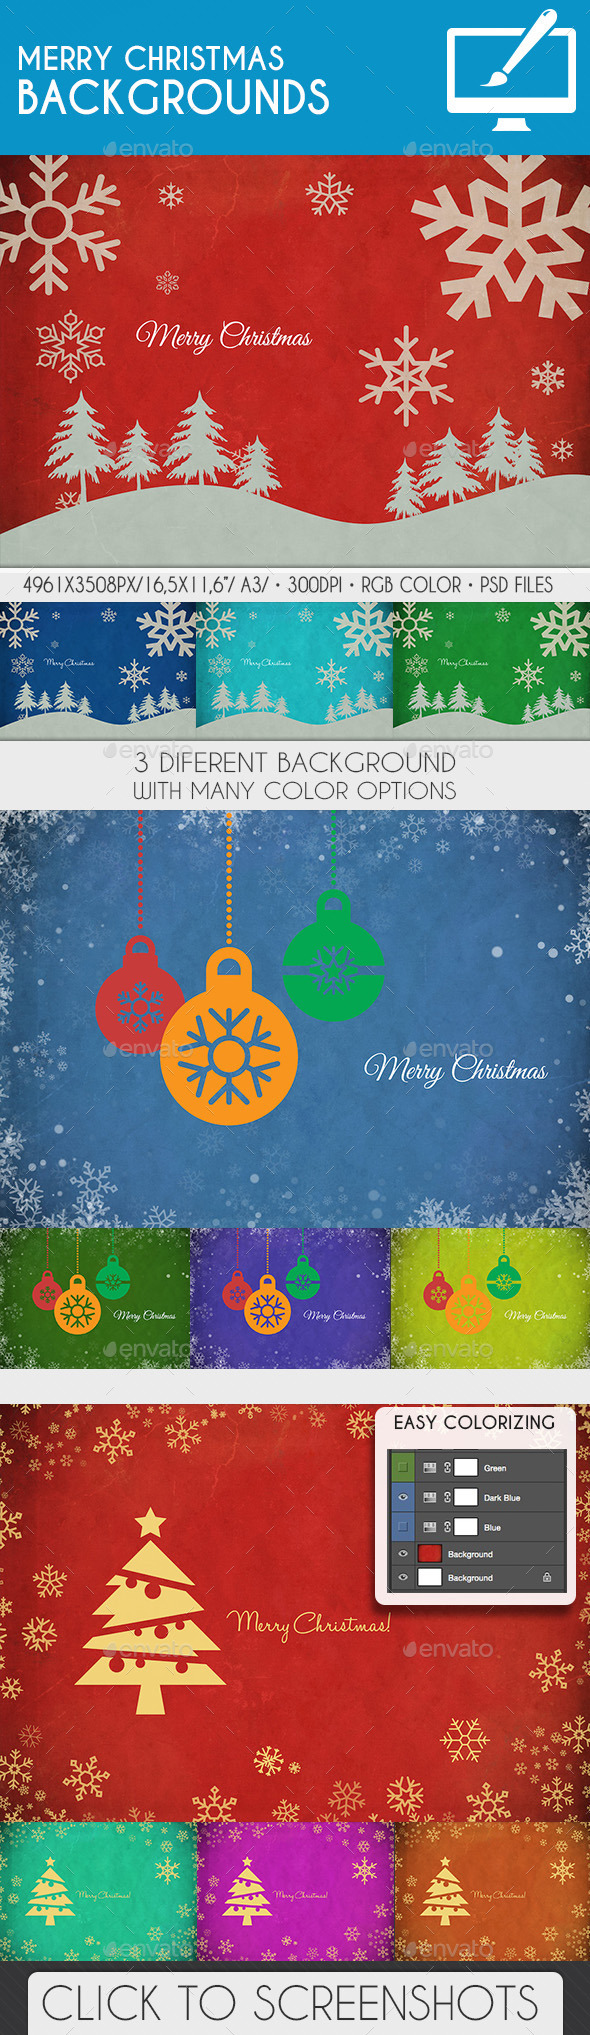 GraphicRiver Vintage Merry Christmas Background PSD 9413995